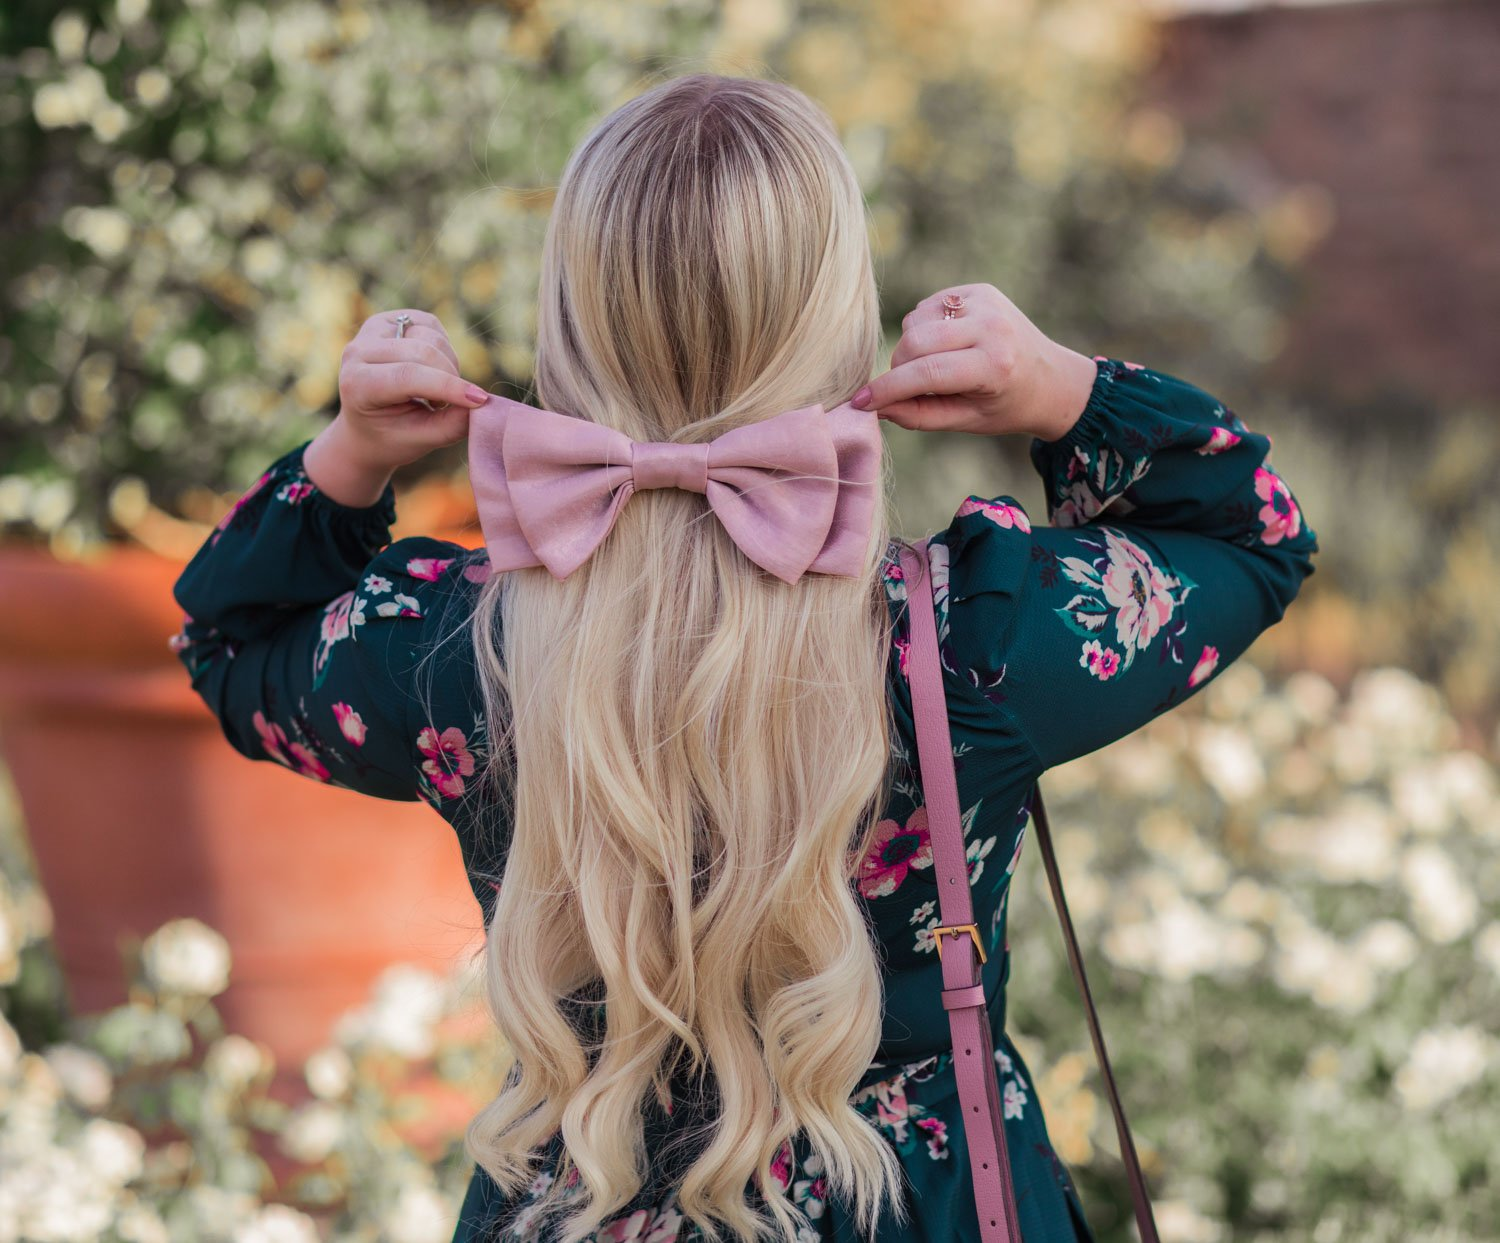 Feminine Fashion Blogger Elizabeth Hugen of Lizzie in Lace shares her girly hair accessories collection including this pink hair bow